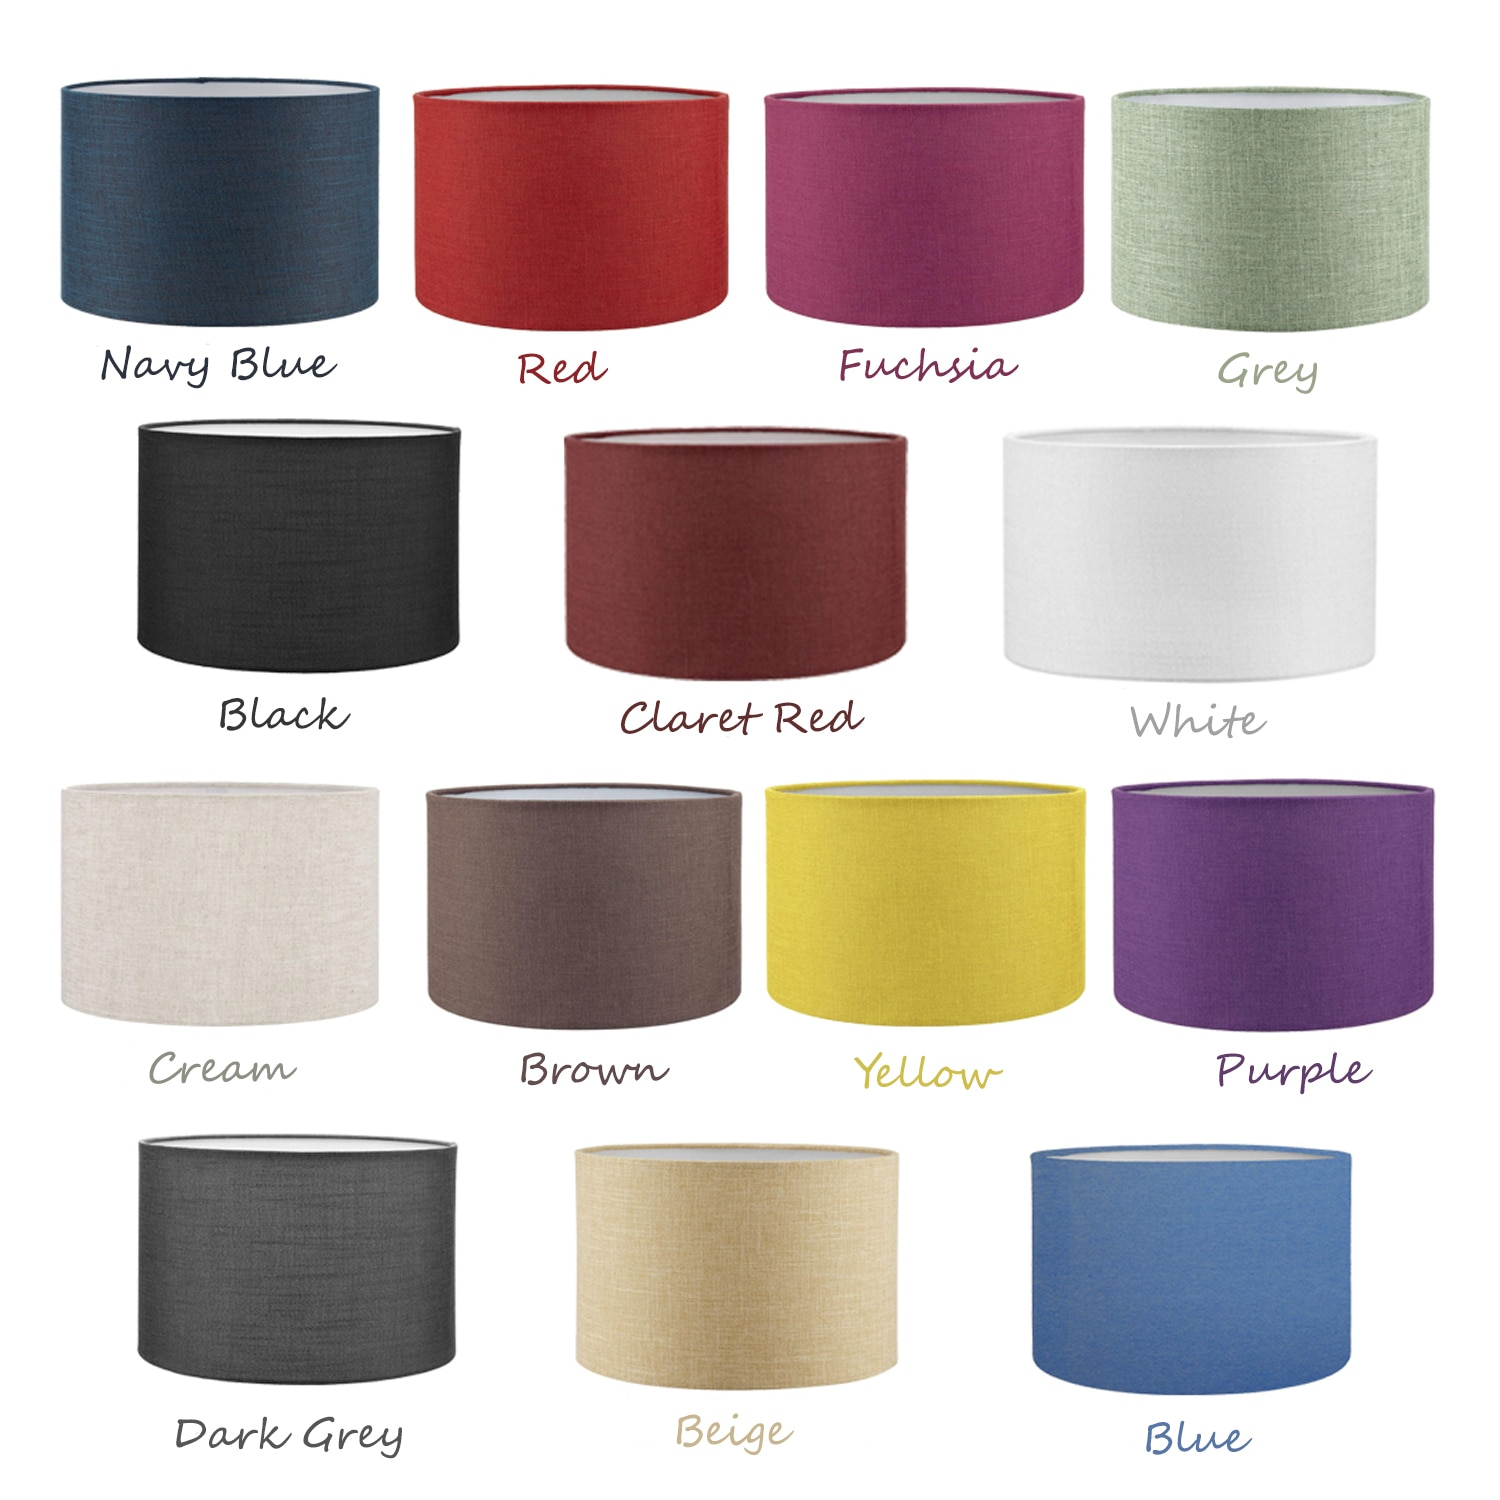 Floor Lamp Lampshade Drum 38x38x22 Cm Decorative High Quality Special Fabric and Metal internal Components lamp covers shades lampshades for table lamps floor pantalla de